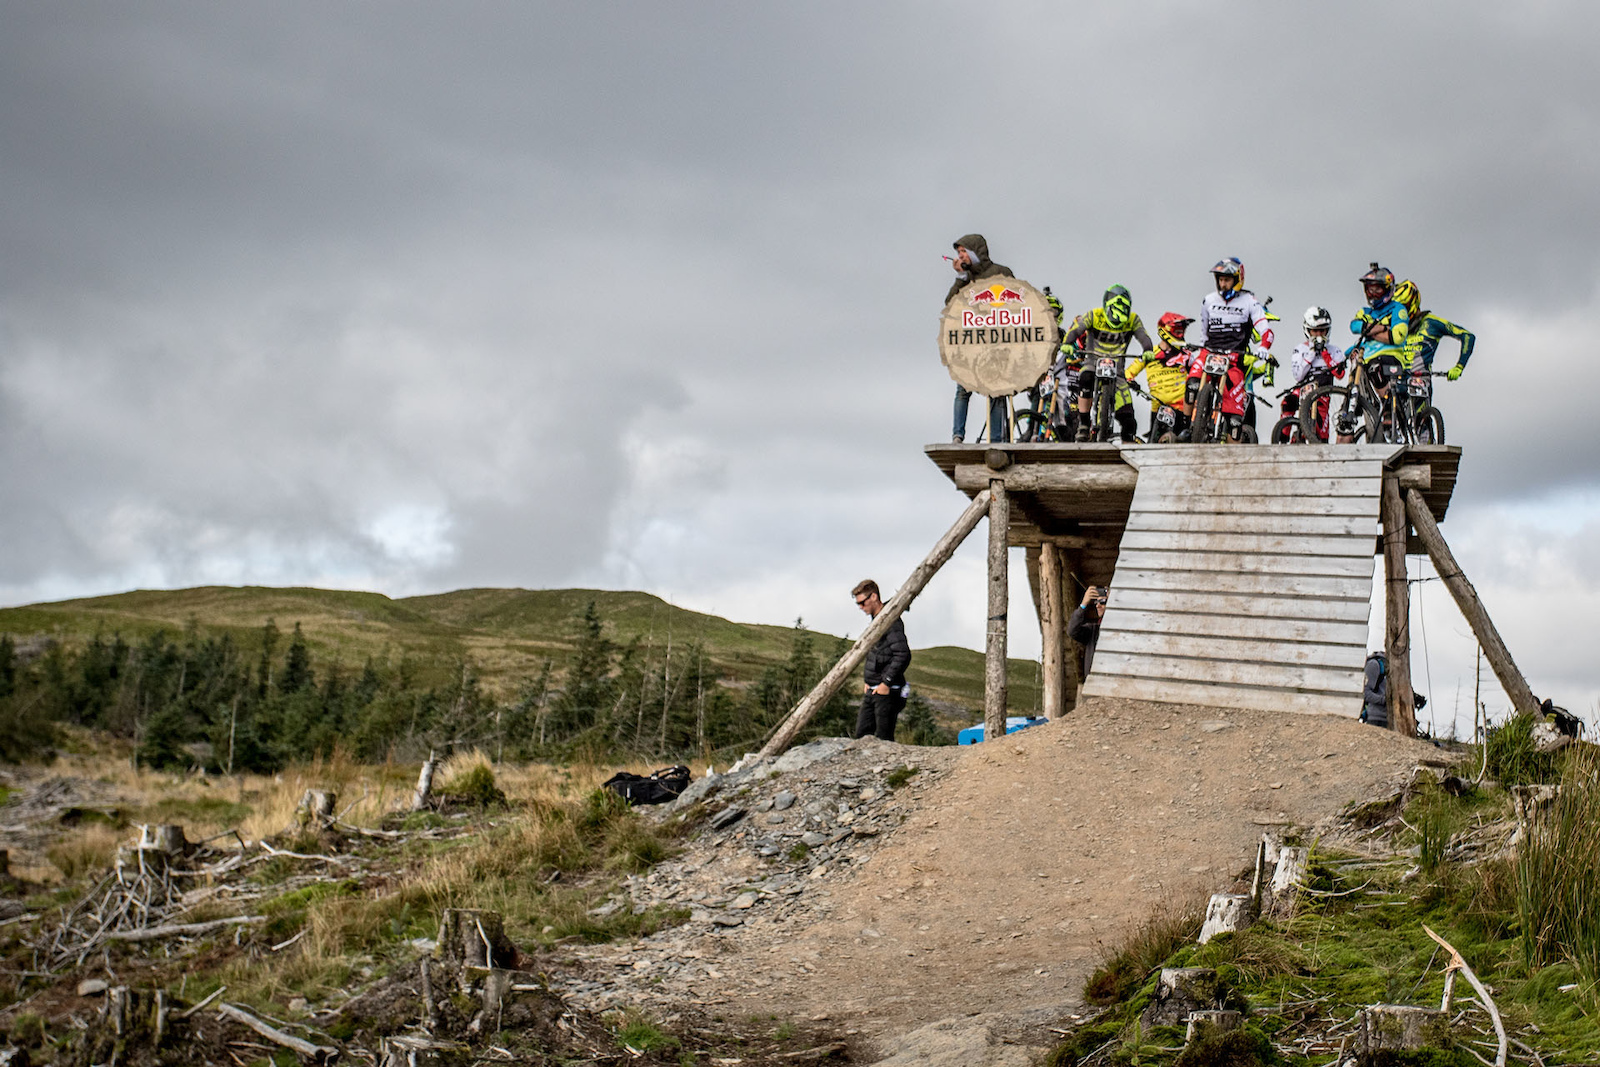 Riders waiting to drop in for first runs of the day.